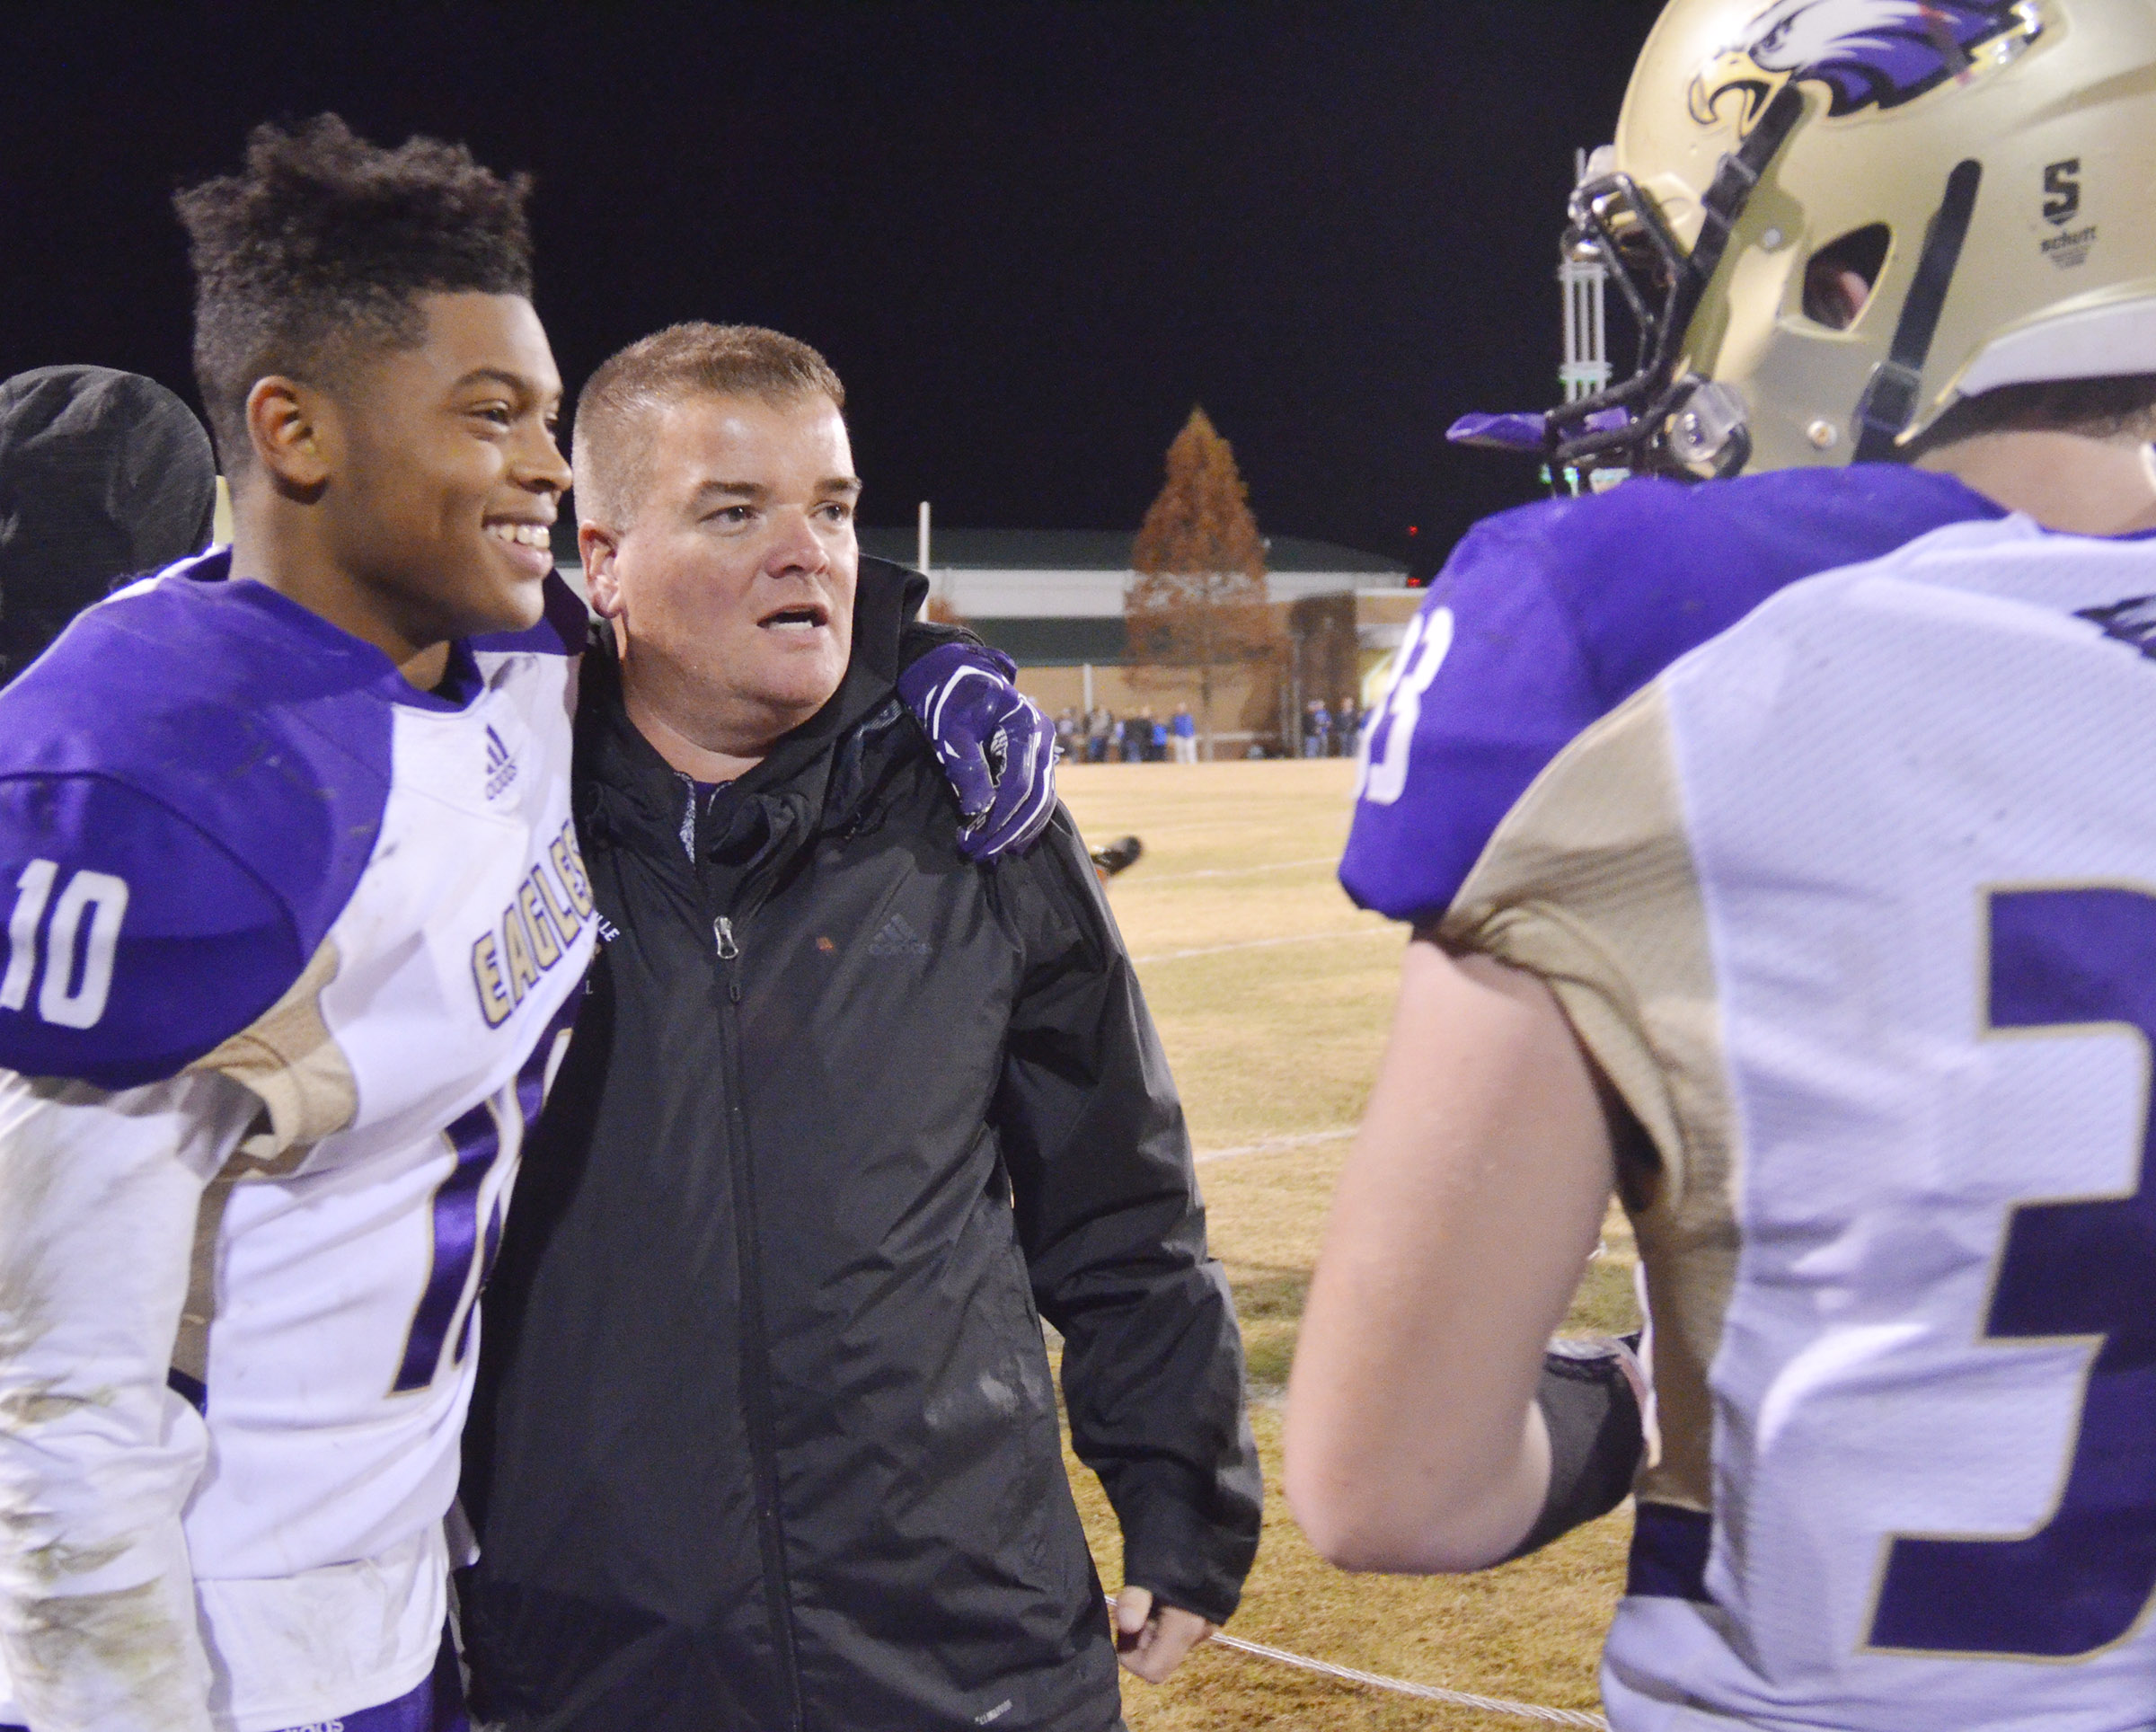 CHS head football coach Dale Estes celebrates with senior Devonte Cubit.